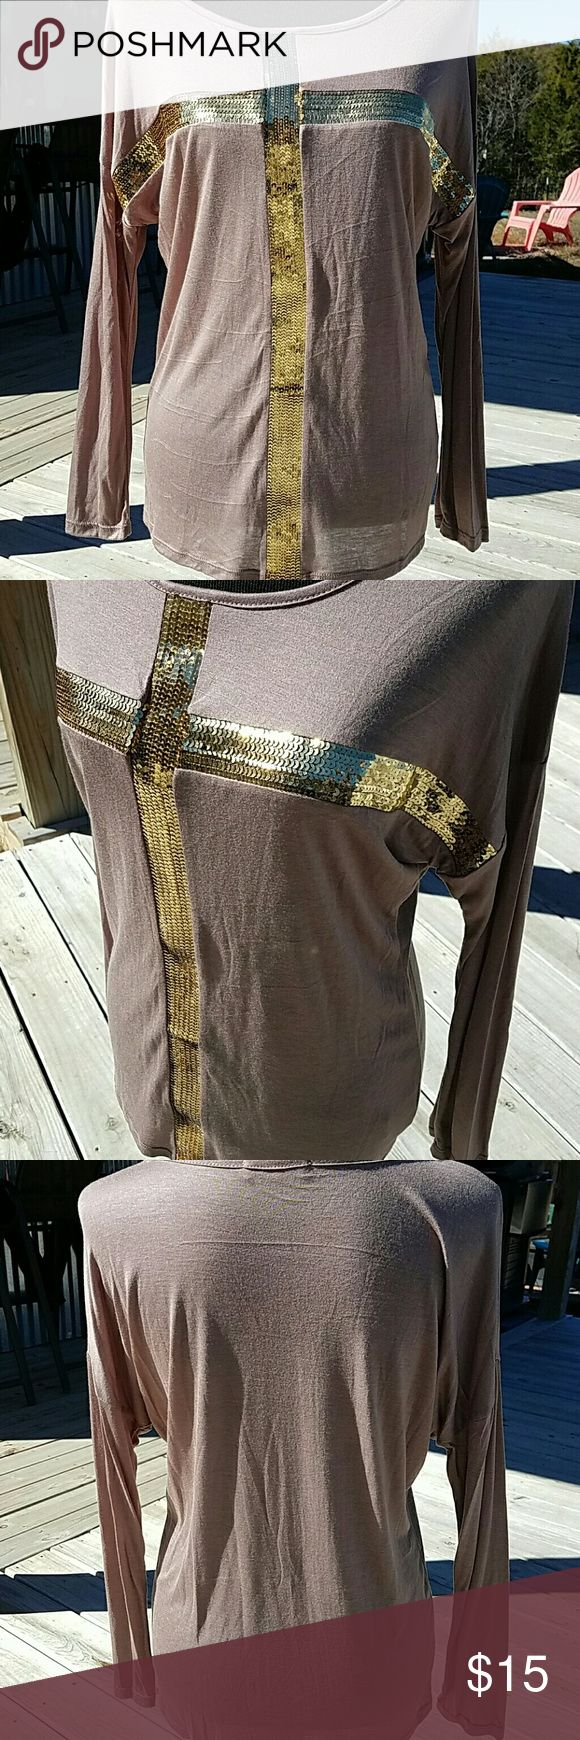 SALE TODAY!! Long Sleeve Top Adorable long sleeve light brown long sleeve top with gold sequin cross.... 95% Rayon and  5% Spandex Tops Tees - Long Sleeve